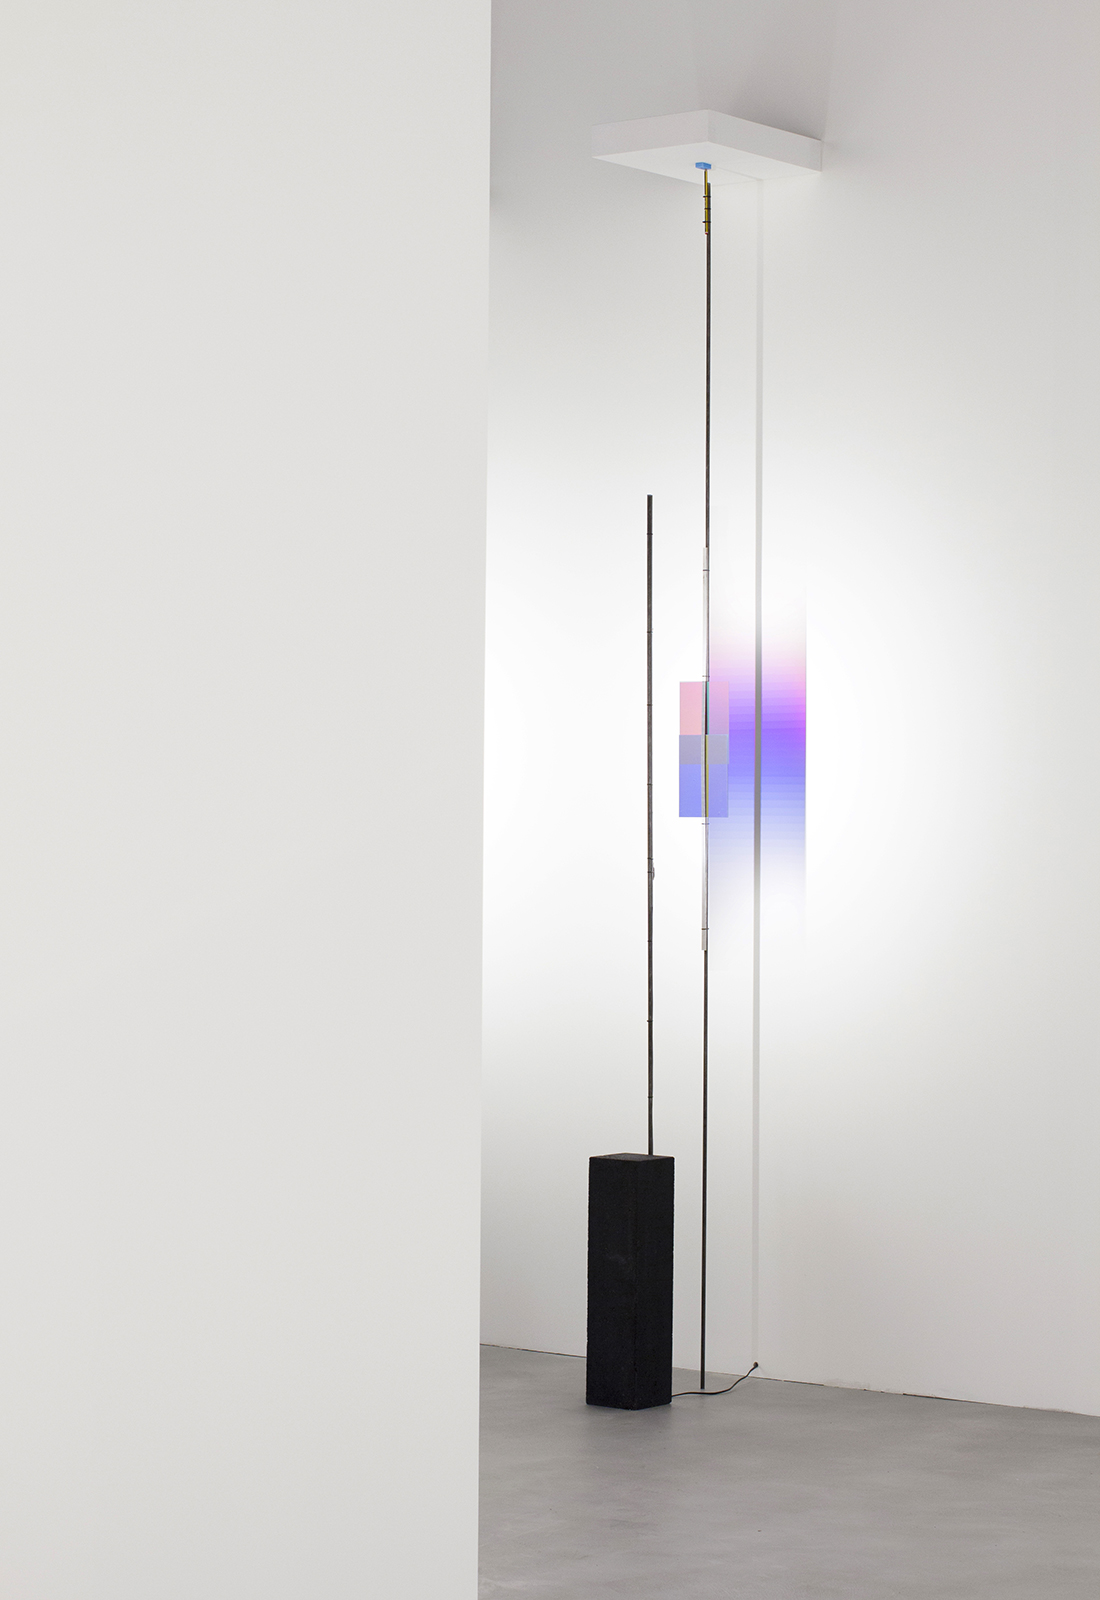 Colore - Test 7, 2016. LED, dichroic glasses, concrete, electrical materials, rubber, pencil. Courtesy Formafantasma. Photography by Johanna Seelemann.